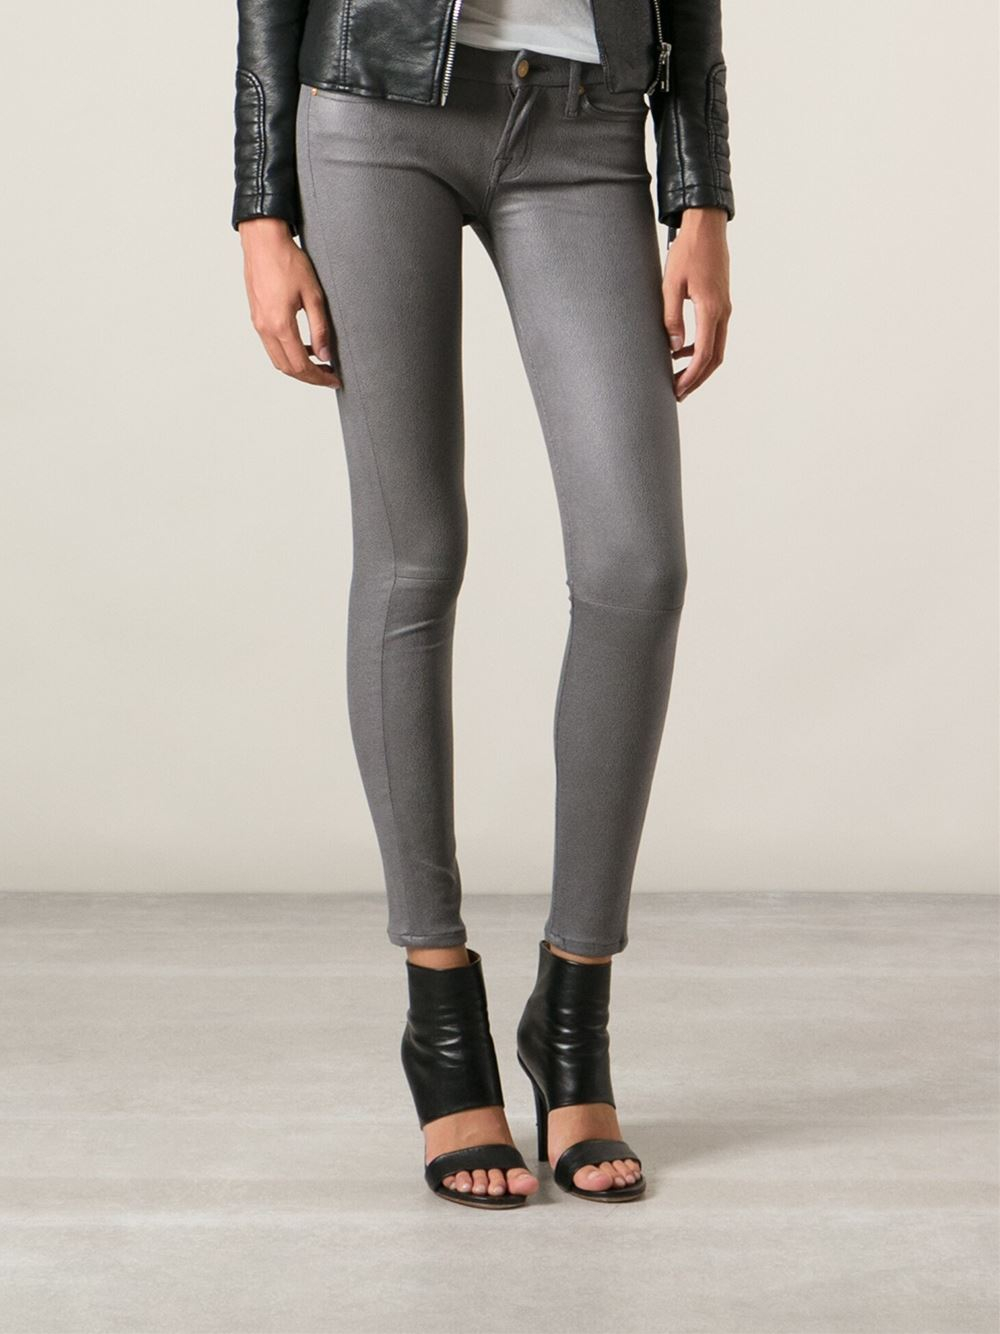 lyst  7 for all mankind coated skinny jeans in gray